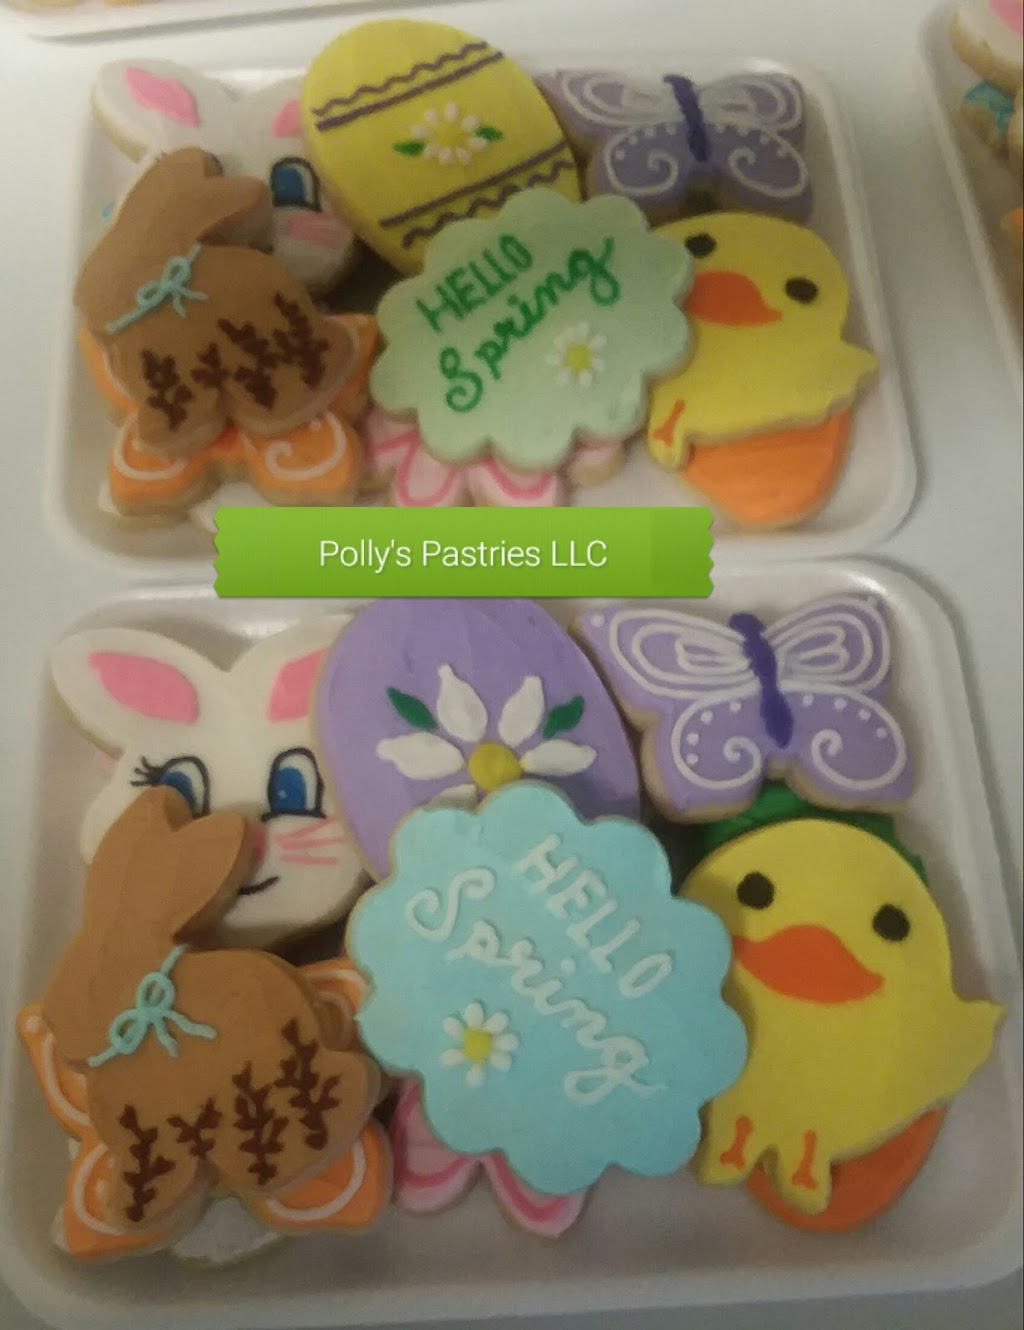 Pollys Pastries - bakery    Photo 1 of 7   Address: 1015 OH-590, Fremont, OH 43420, USA   Phone: (419) 307-3721